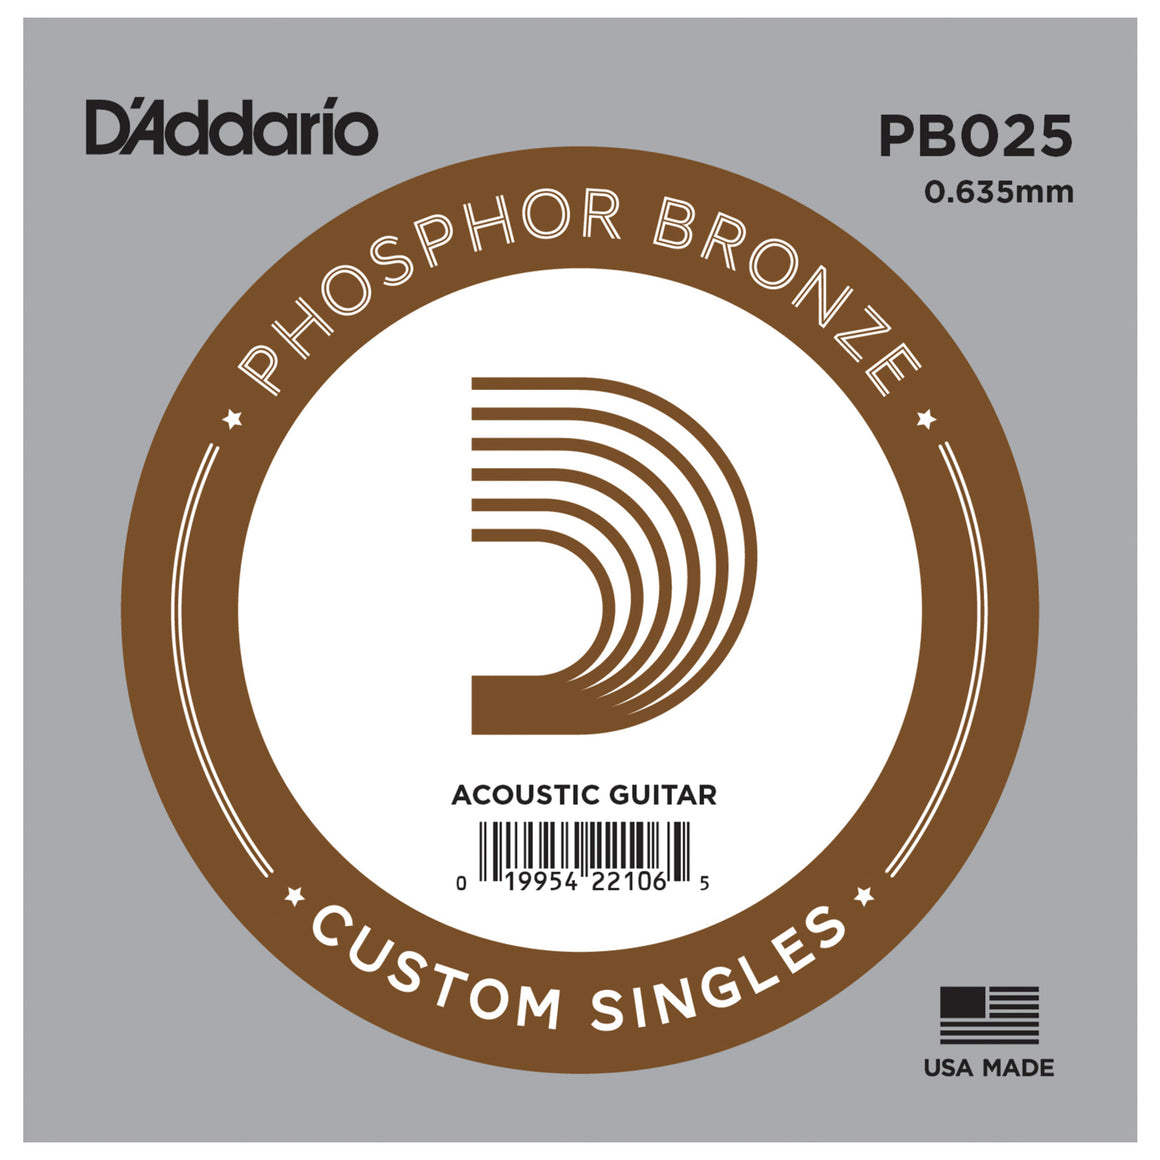 D'Addario PB025 Phosphor Bronze Single Acoustic Guitar String .025